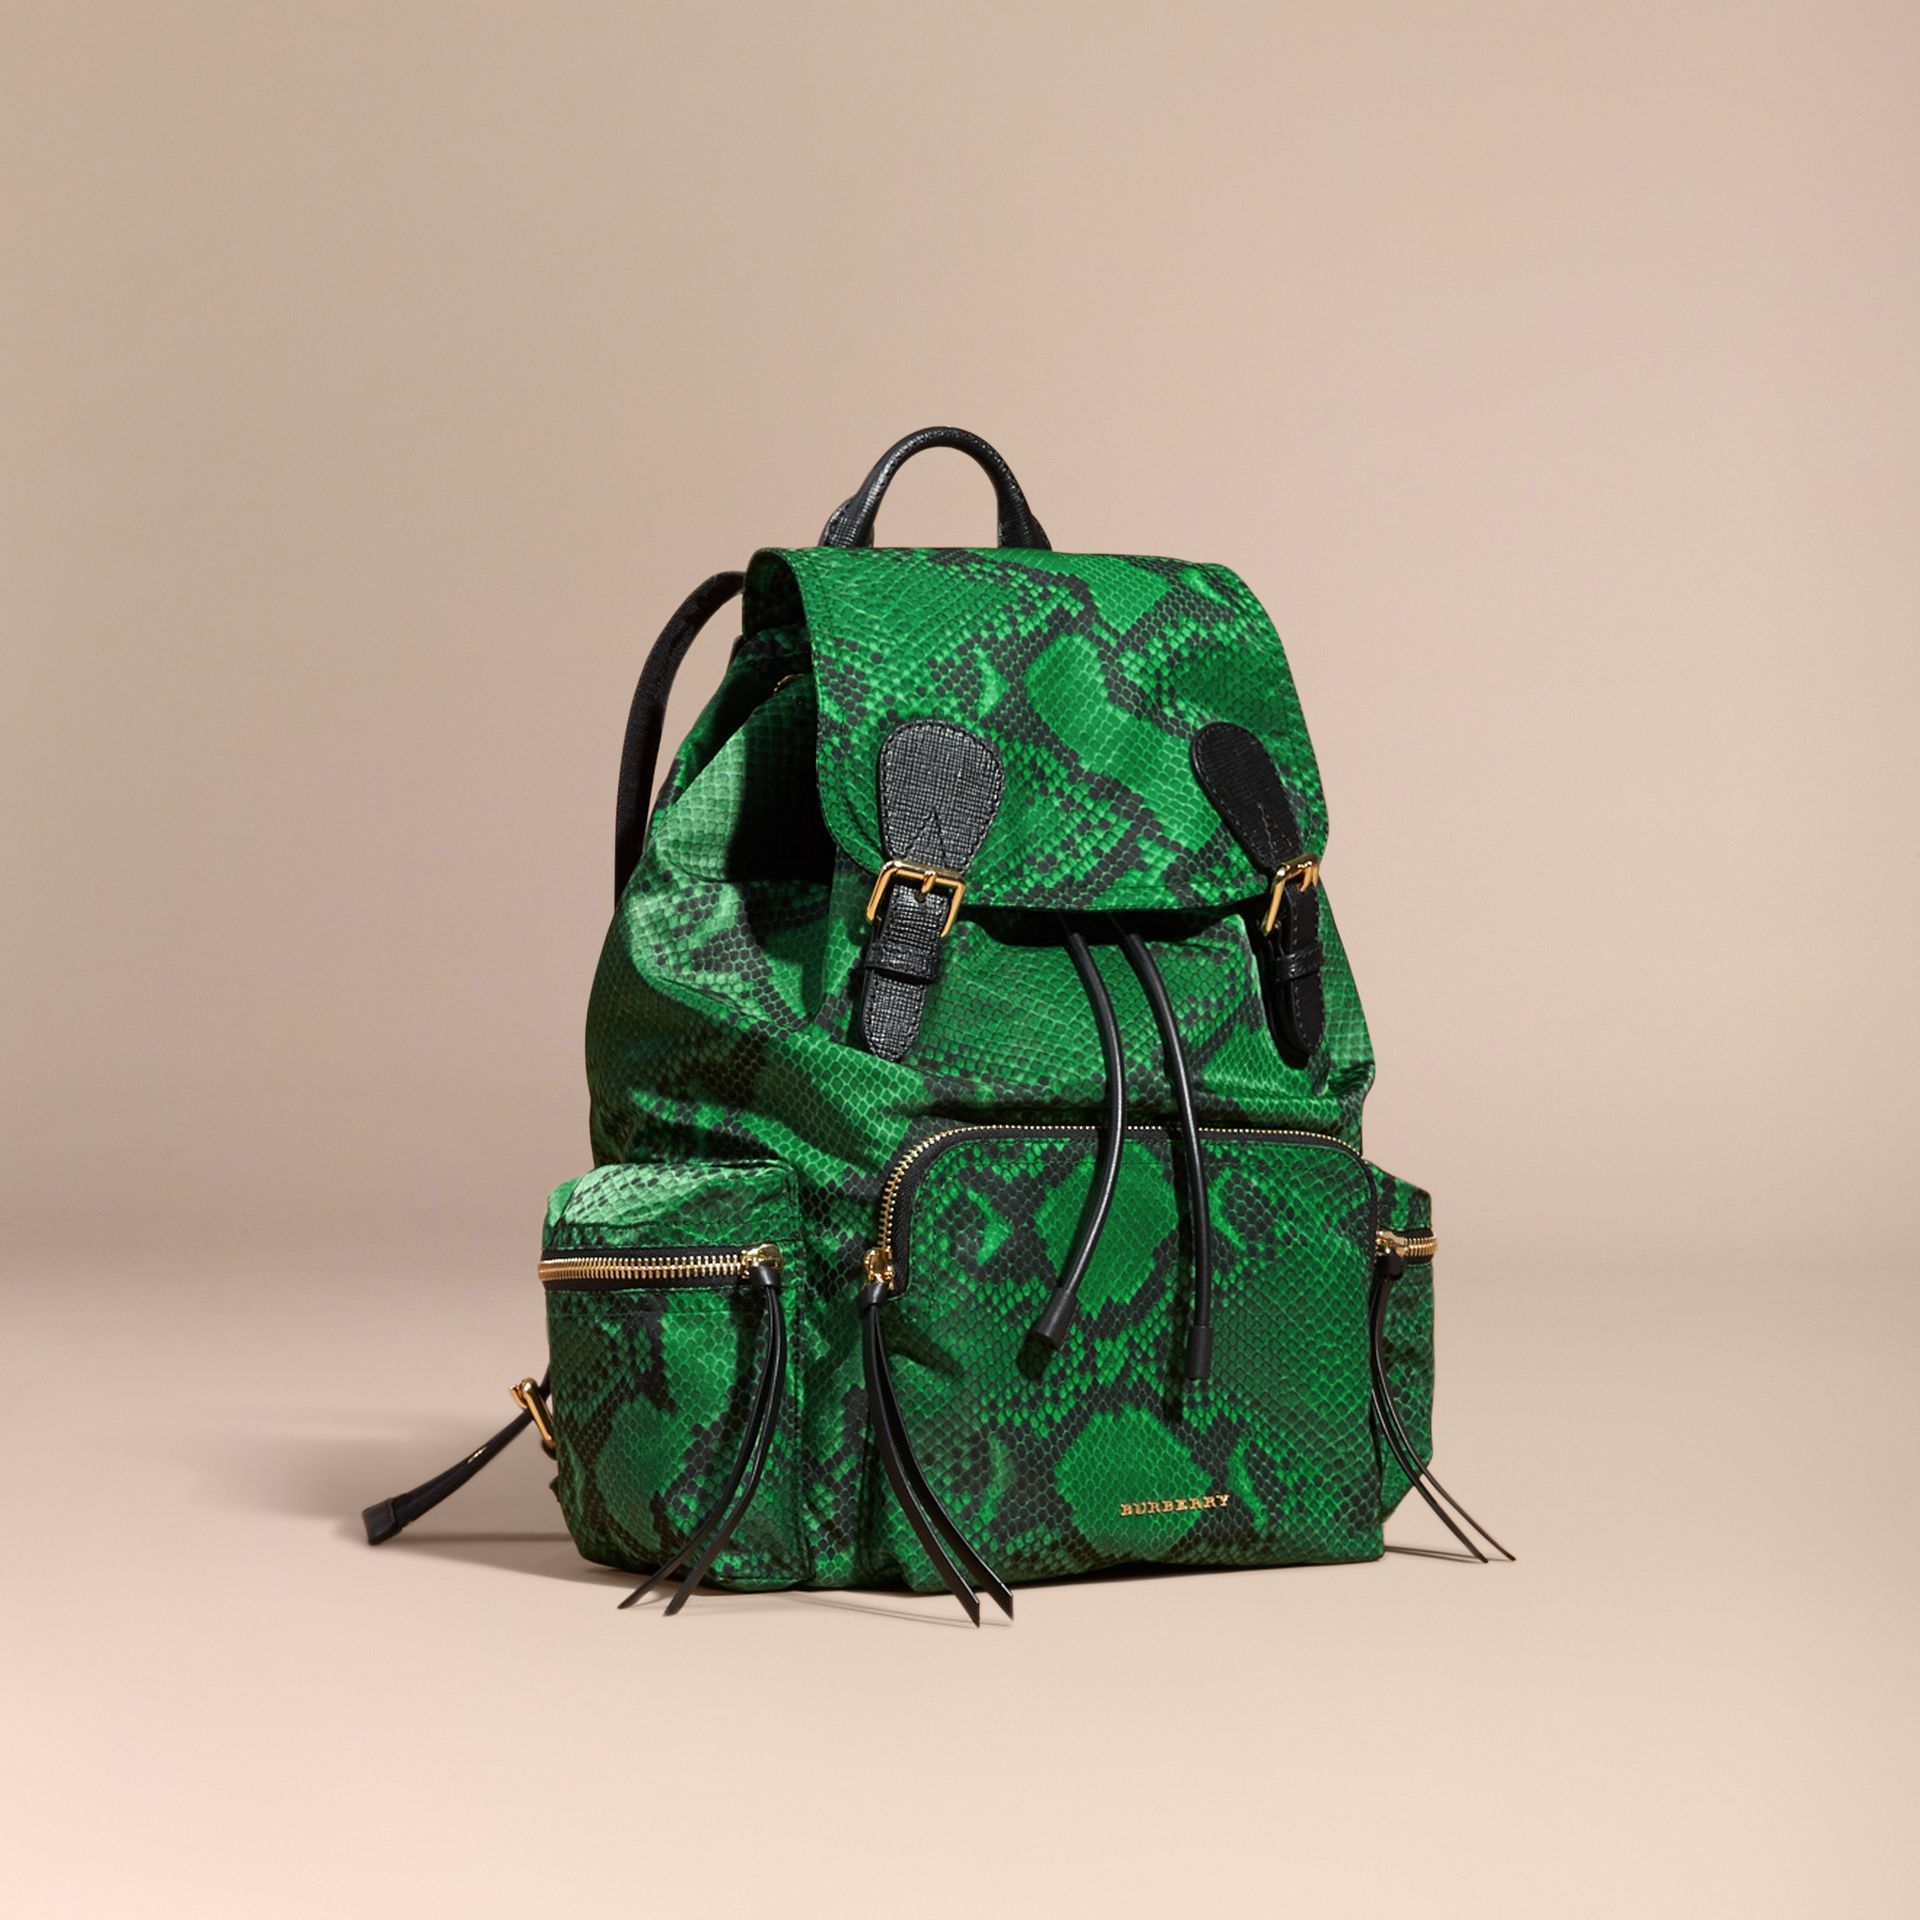 Green The Large Rucksack in Python Print Nylon and Leather Green - gallery image 1